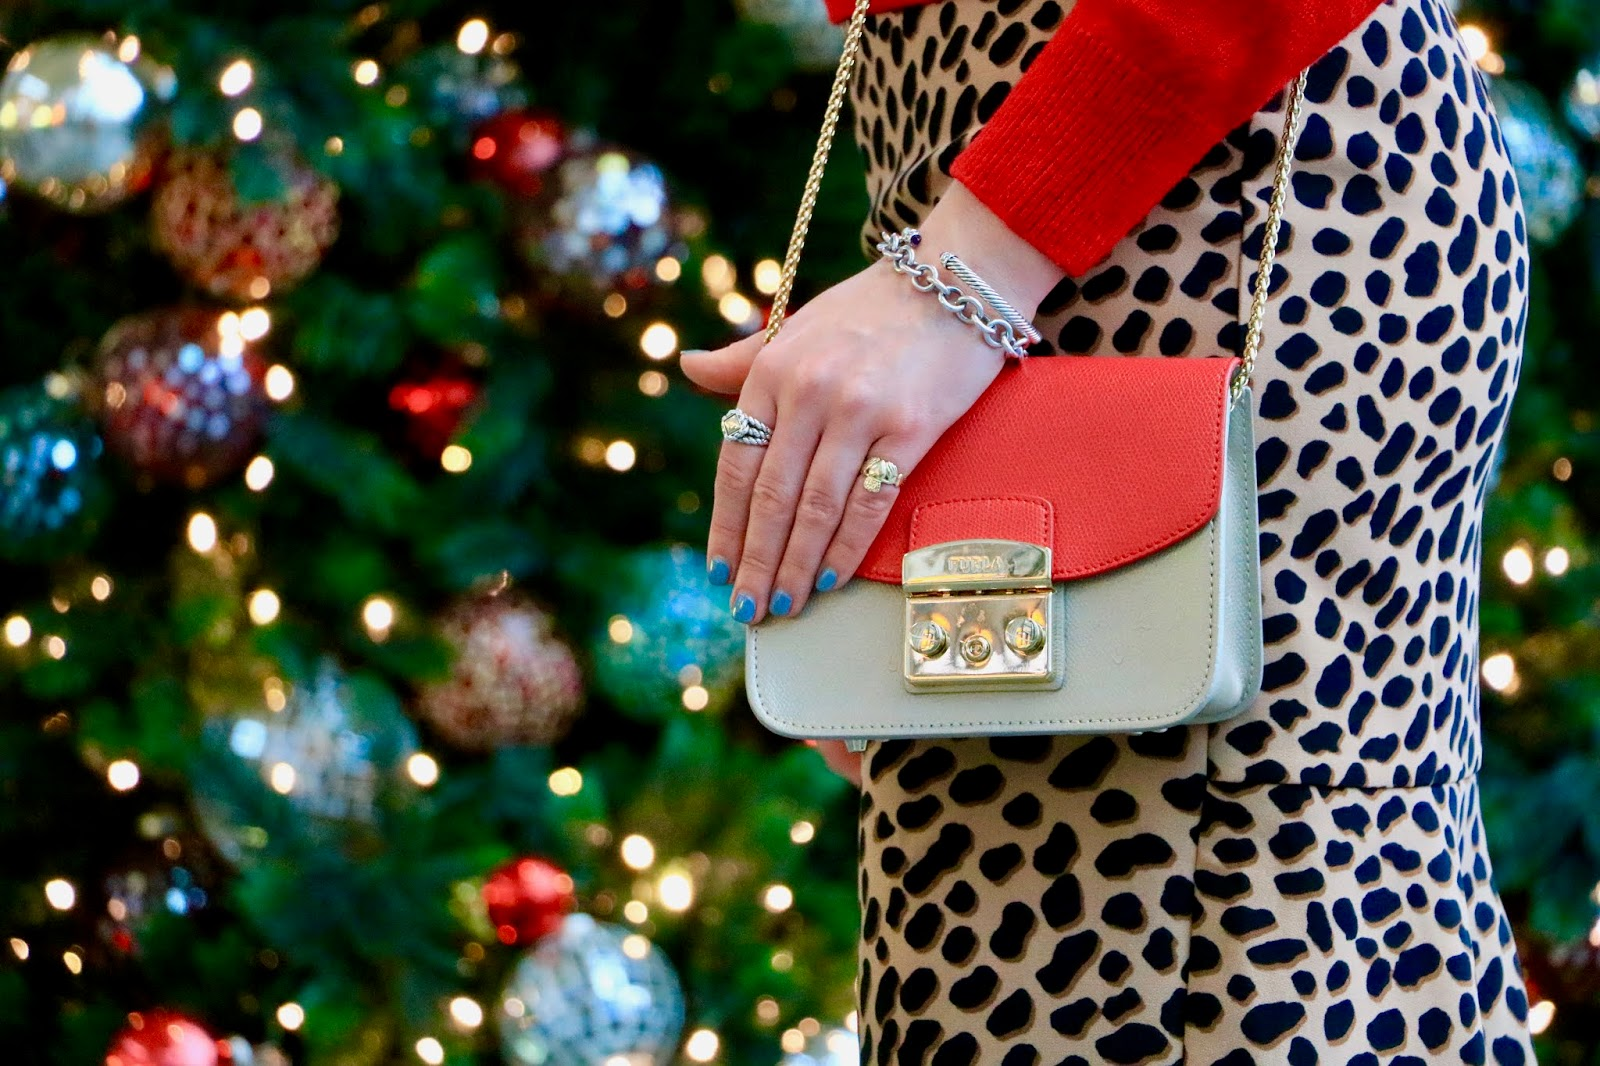 Nyc fashion blogger Kathleen Harper wearing a red Furla mini bag